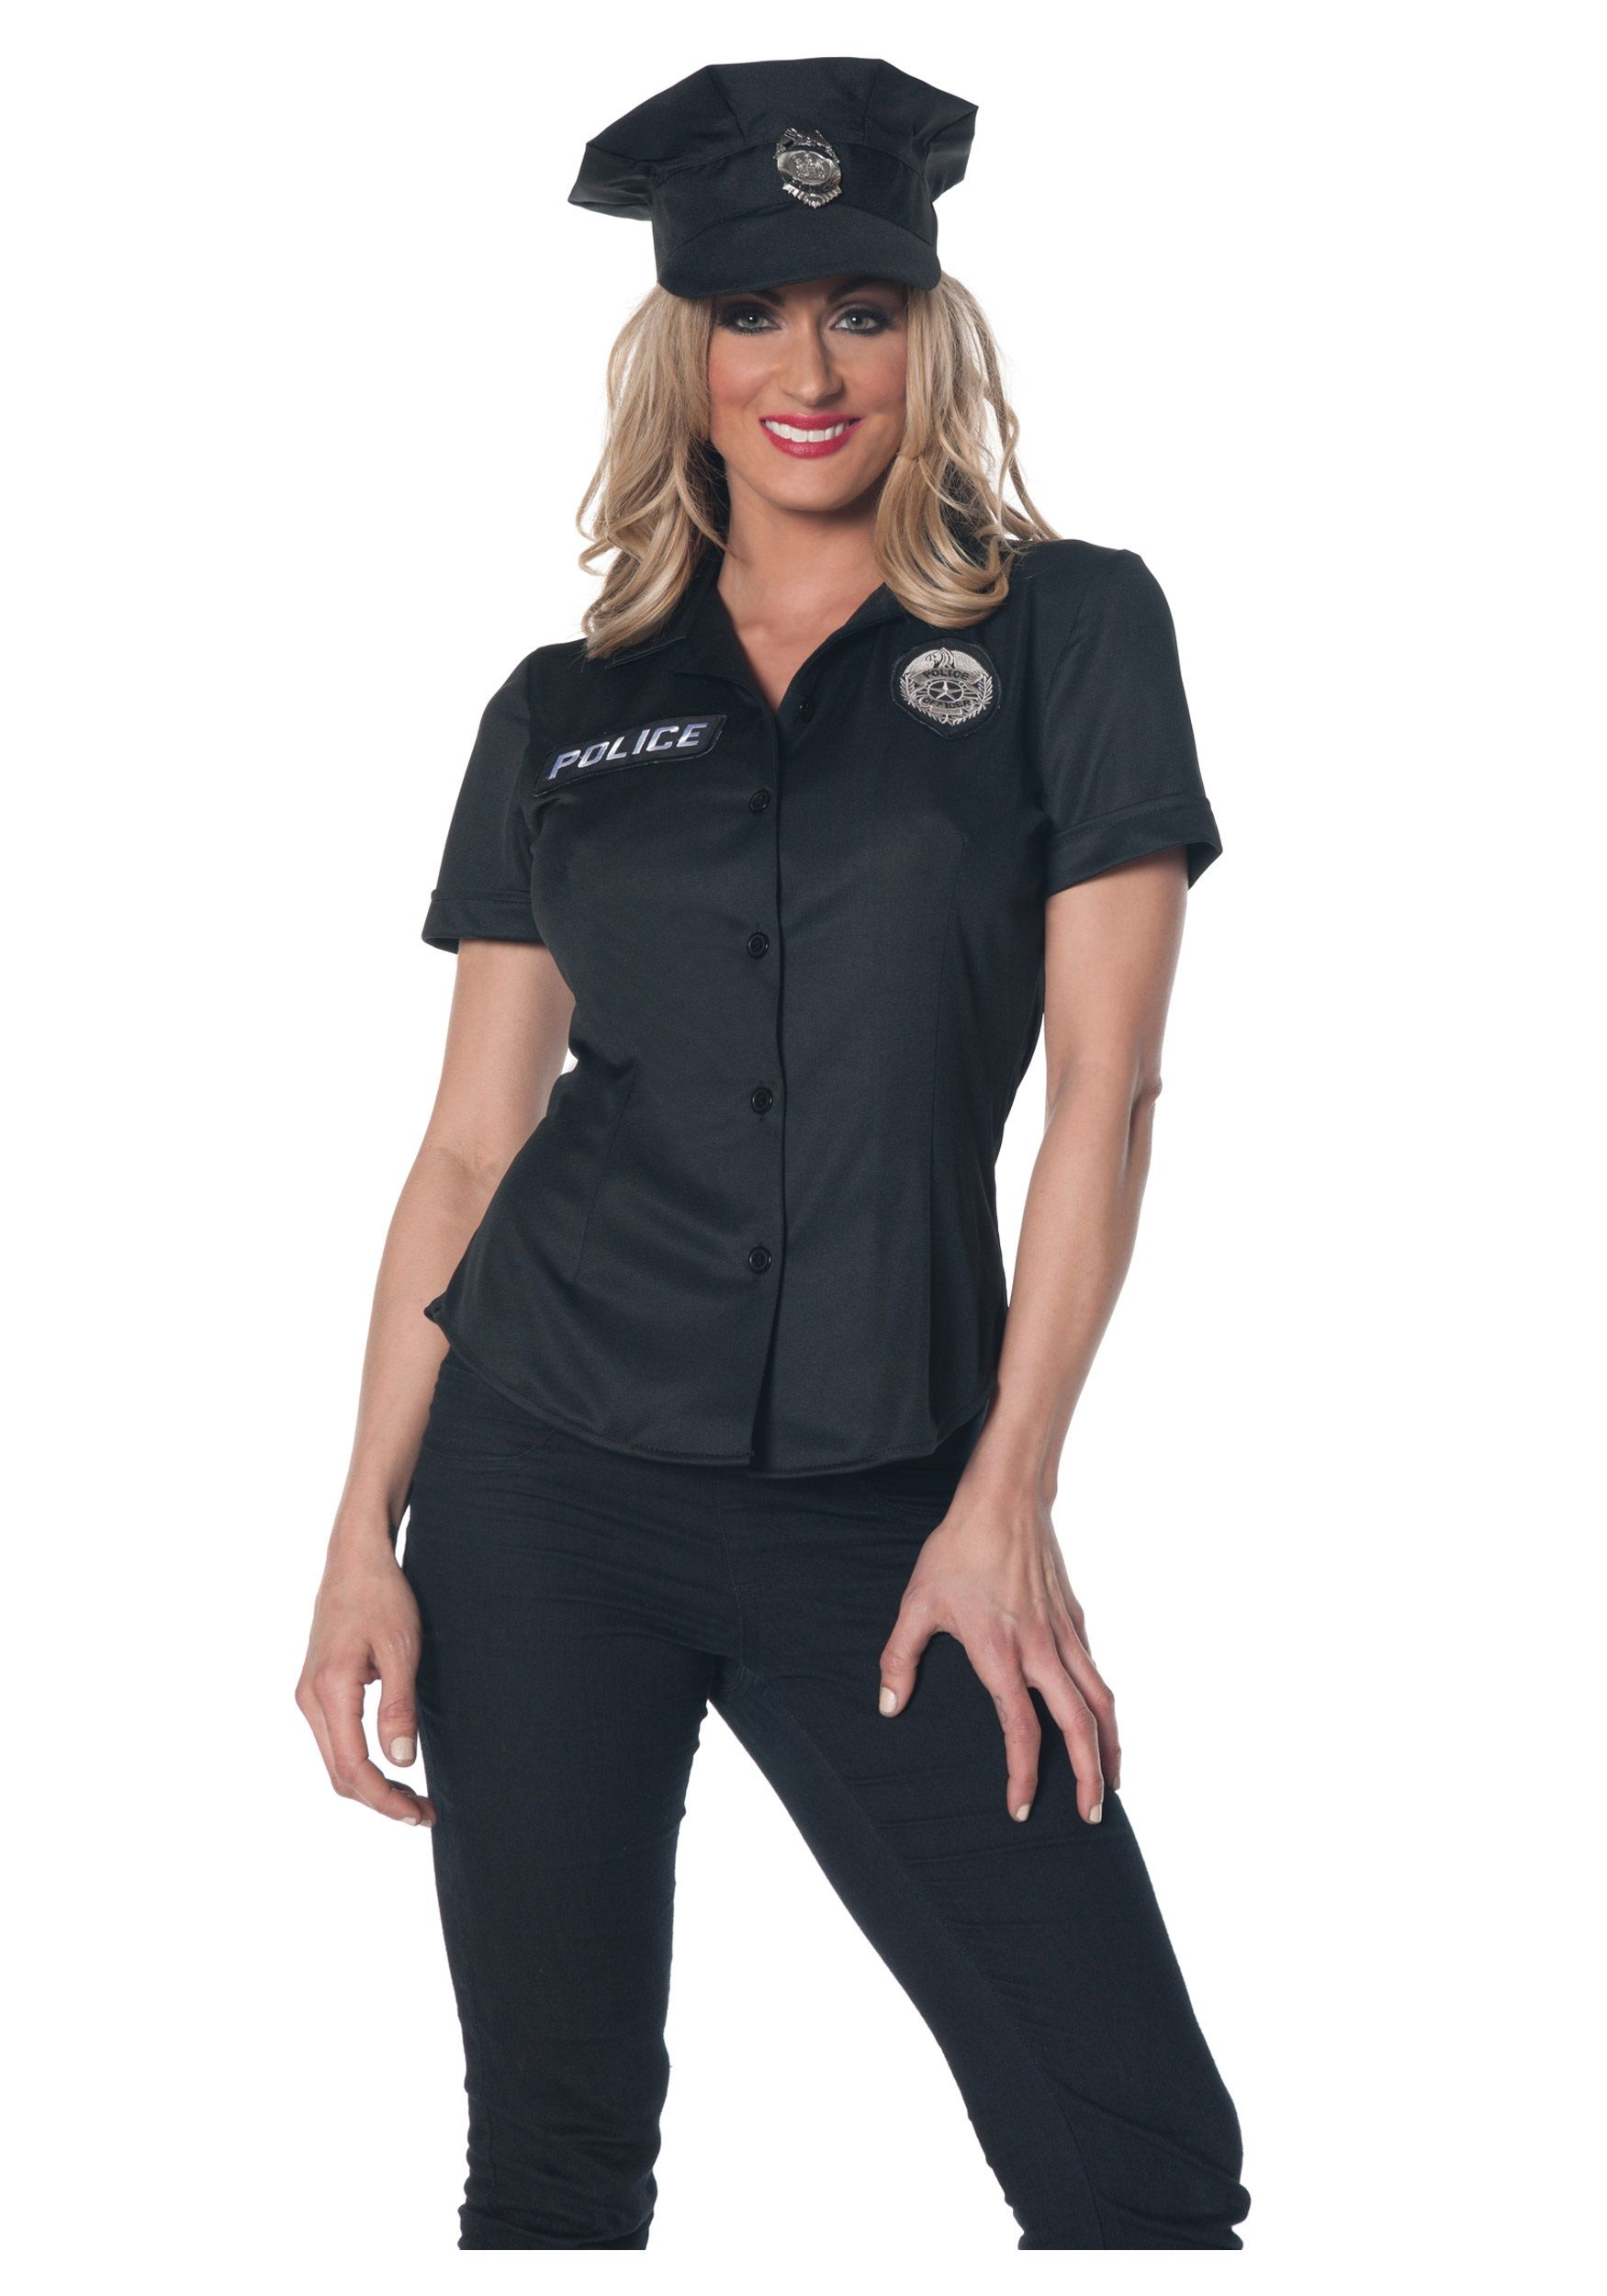 Women\'s Police Shirt Costume | Women Halloween Costumes | Pinterest